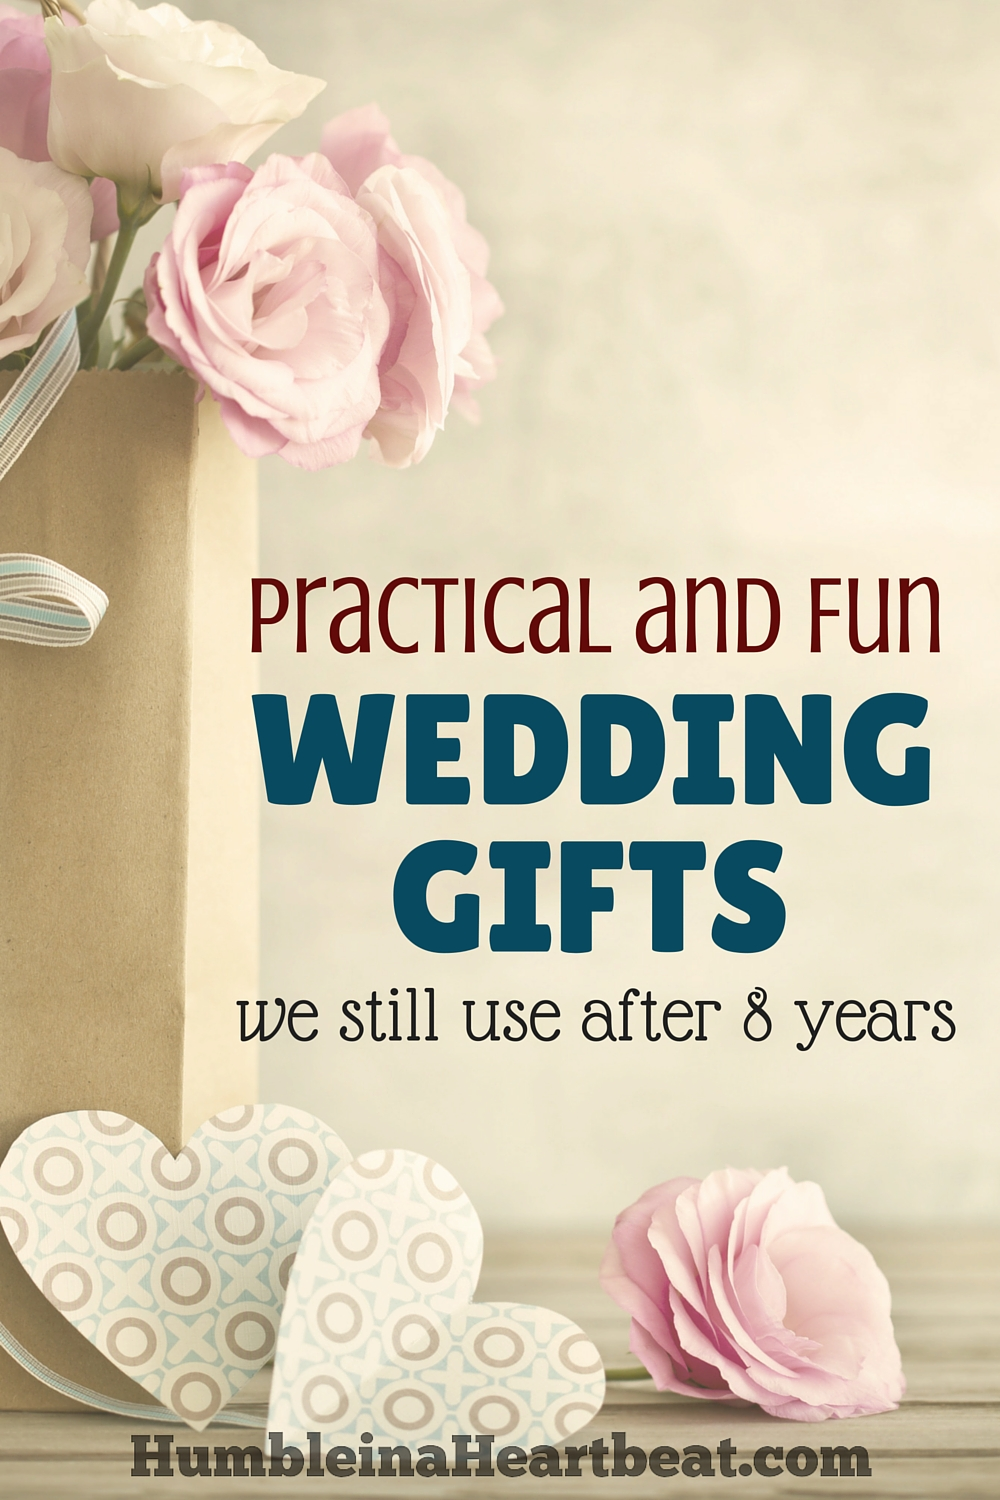 Best Wedding Gift Ever For Bride : We got so many gifts for our wedding 8 years ago, but these are the ...